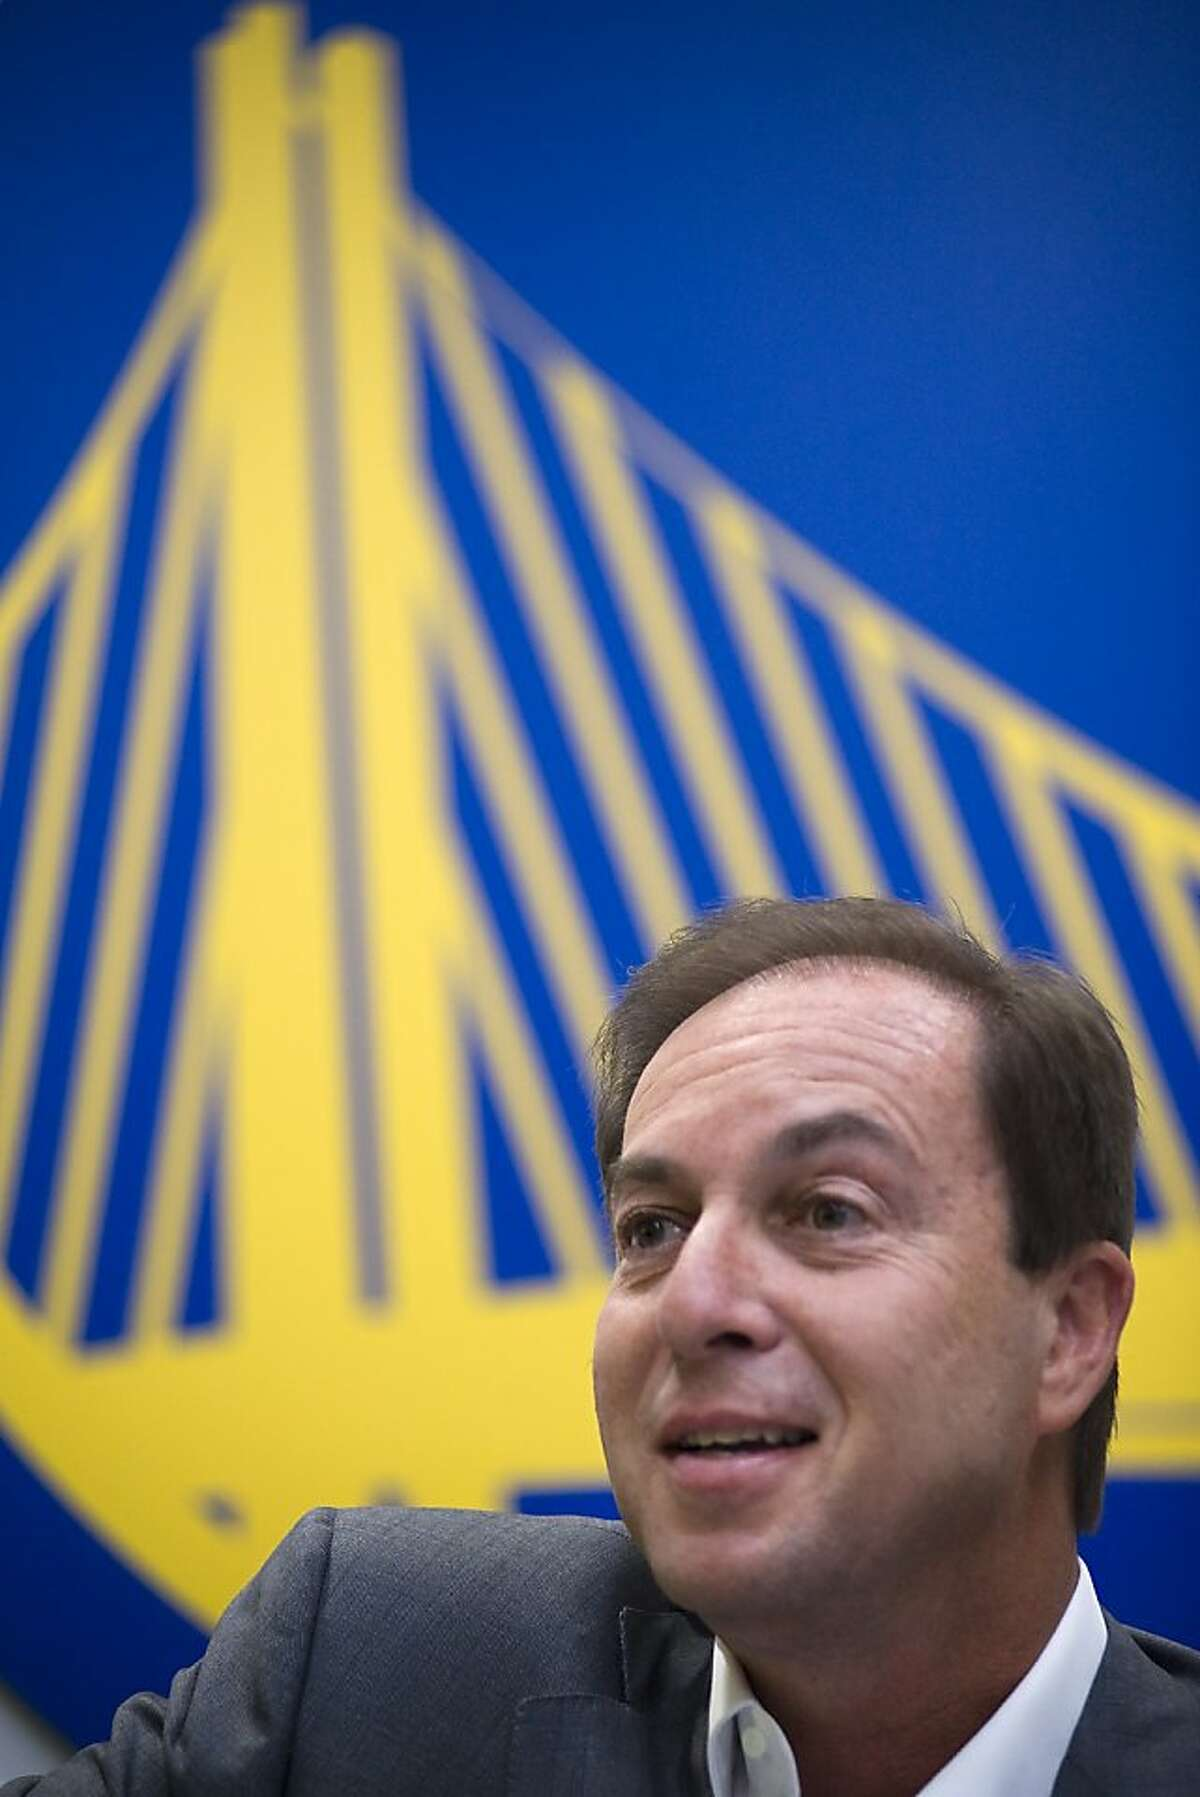 Owner Joe Lacob(pictured) and team President and CEO Rick Welts announced that the Golden State Warriors are officially moving to San Francisco. The team will be housed in a new facility on piers 30-32 on the Embarcadero. Oakland, CA on Monday May 21st, 2012